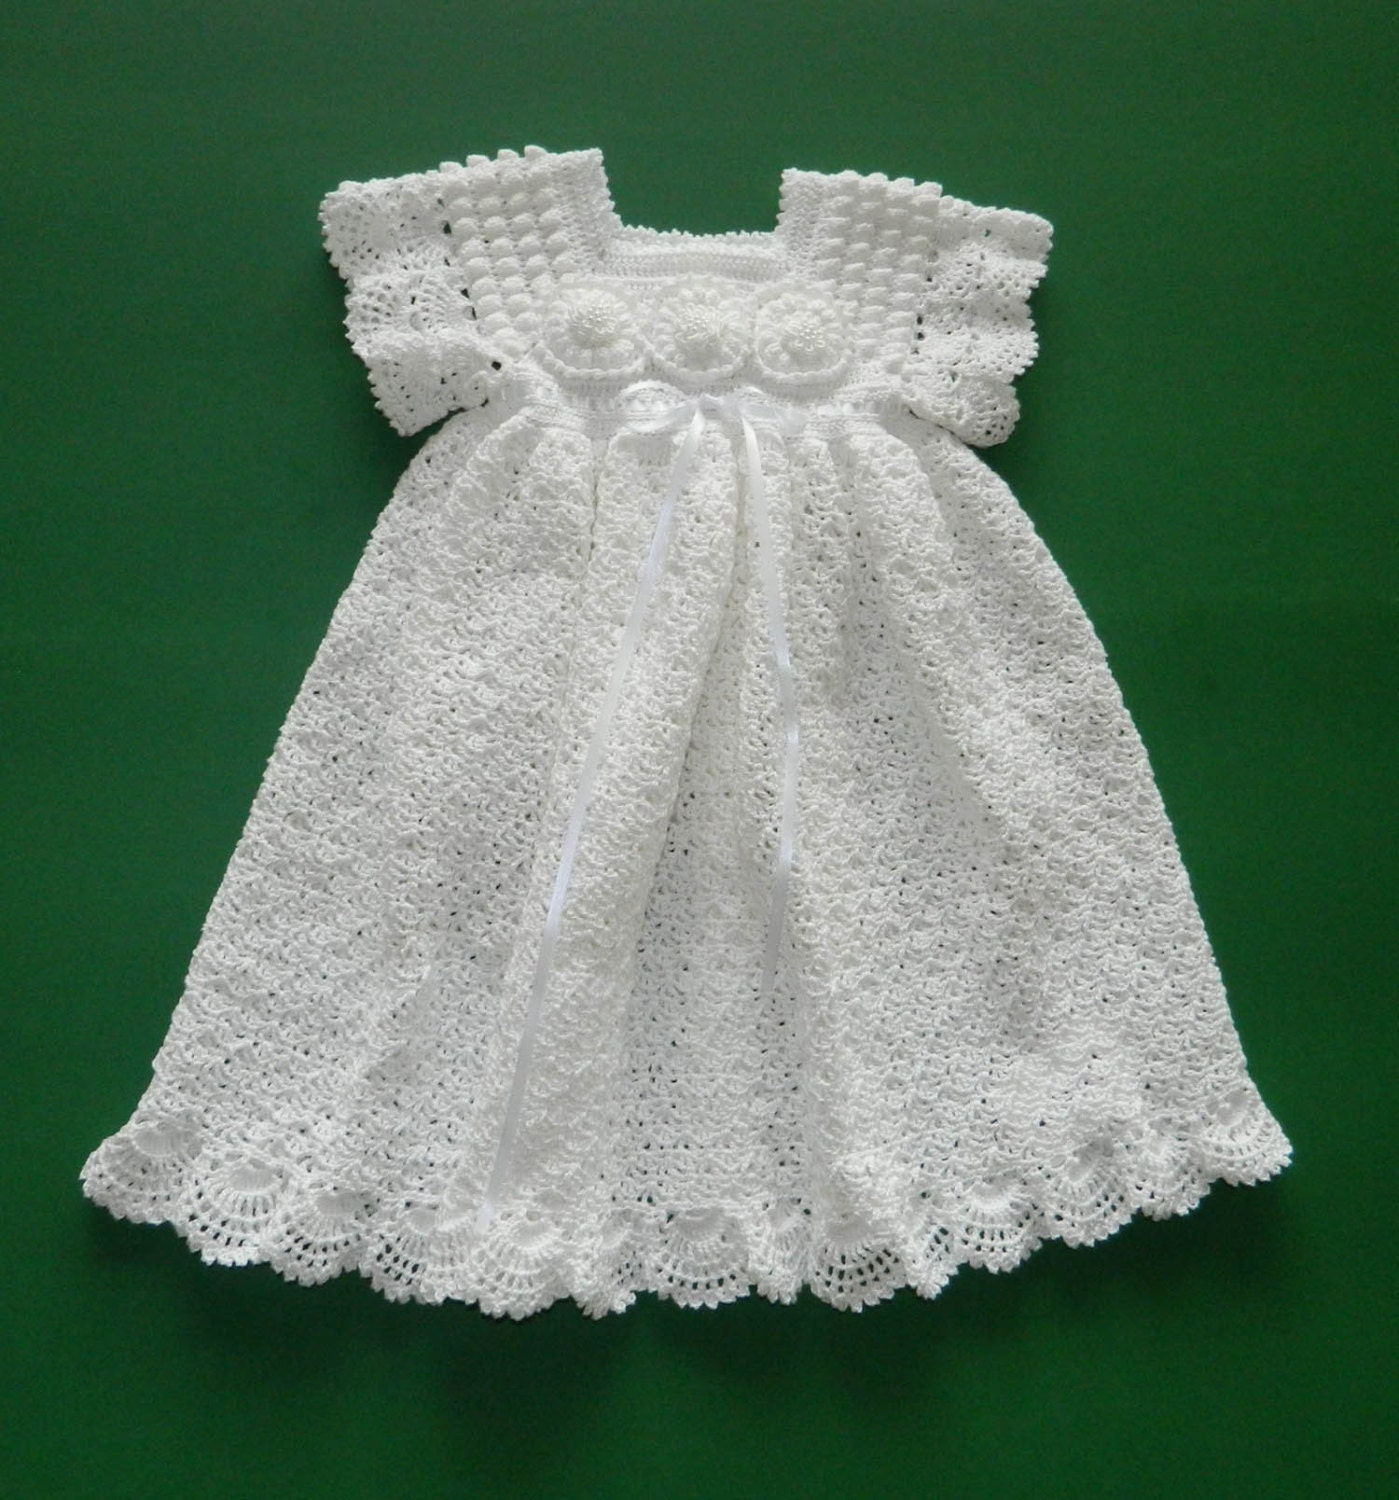 THREAD CROCHET CHRISTENING GOWN PATTERNS ? Easy Crochet ...